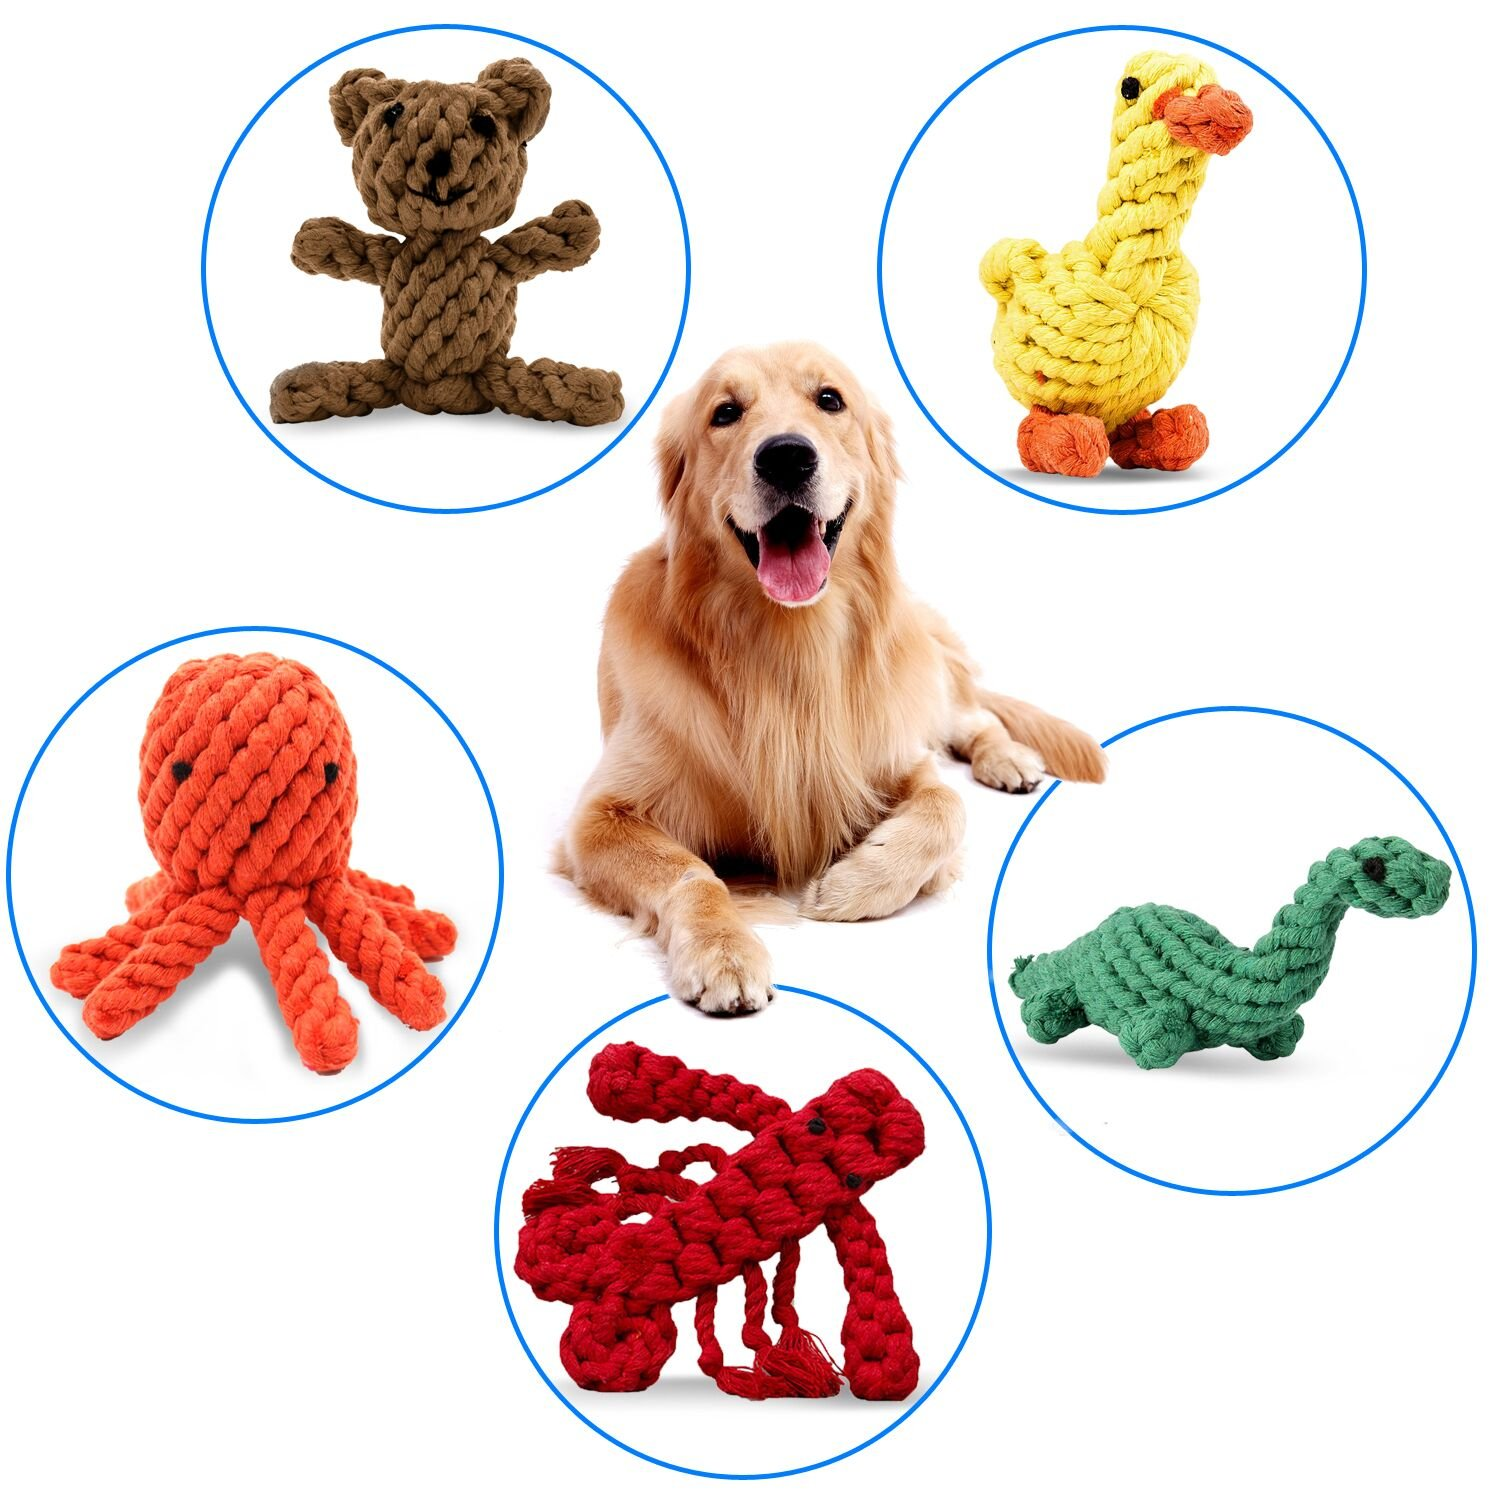 PEHOST Dog Rope Toys Animal Design Cotton Rope Dog Toys for Puppy Pet Play Chew and Training (Set of 5)